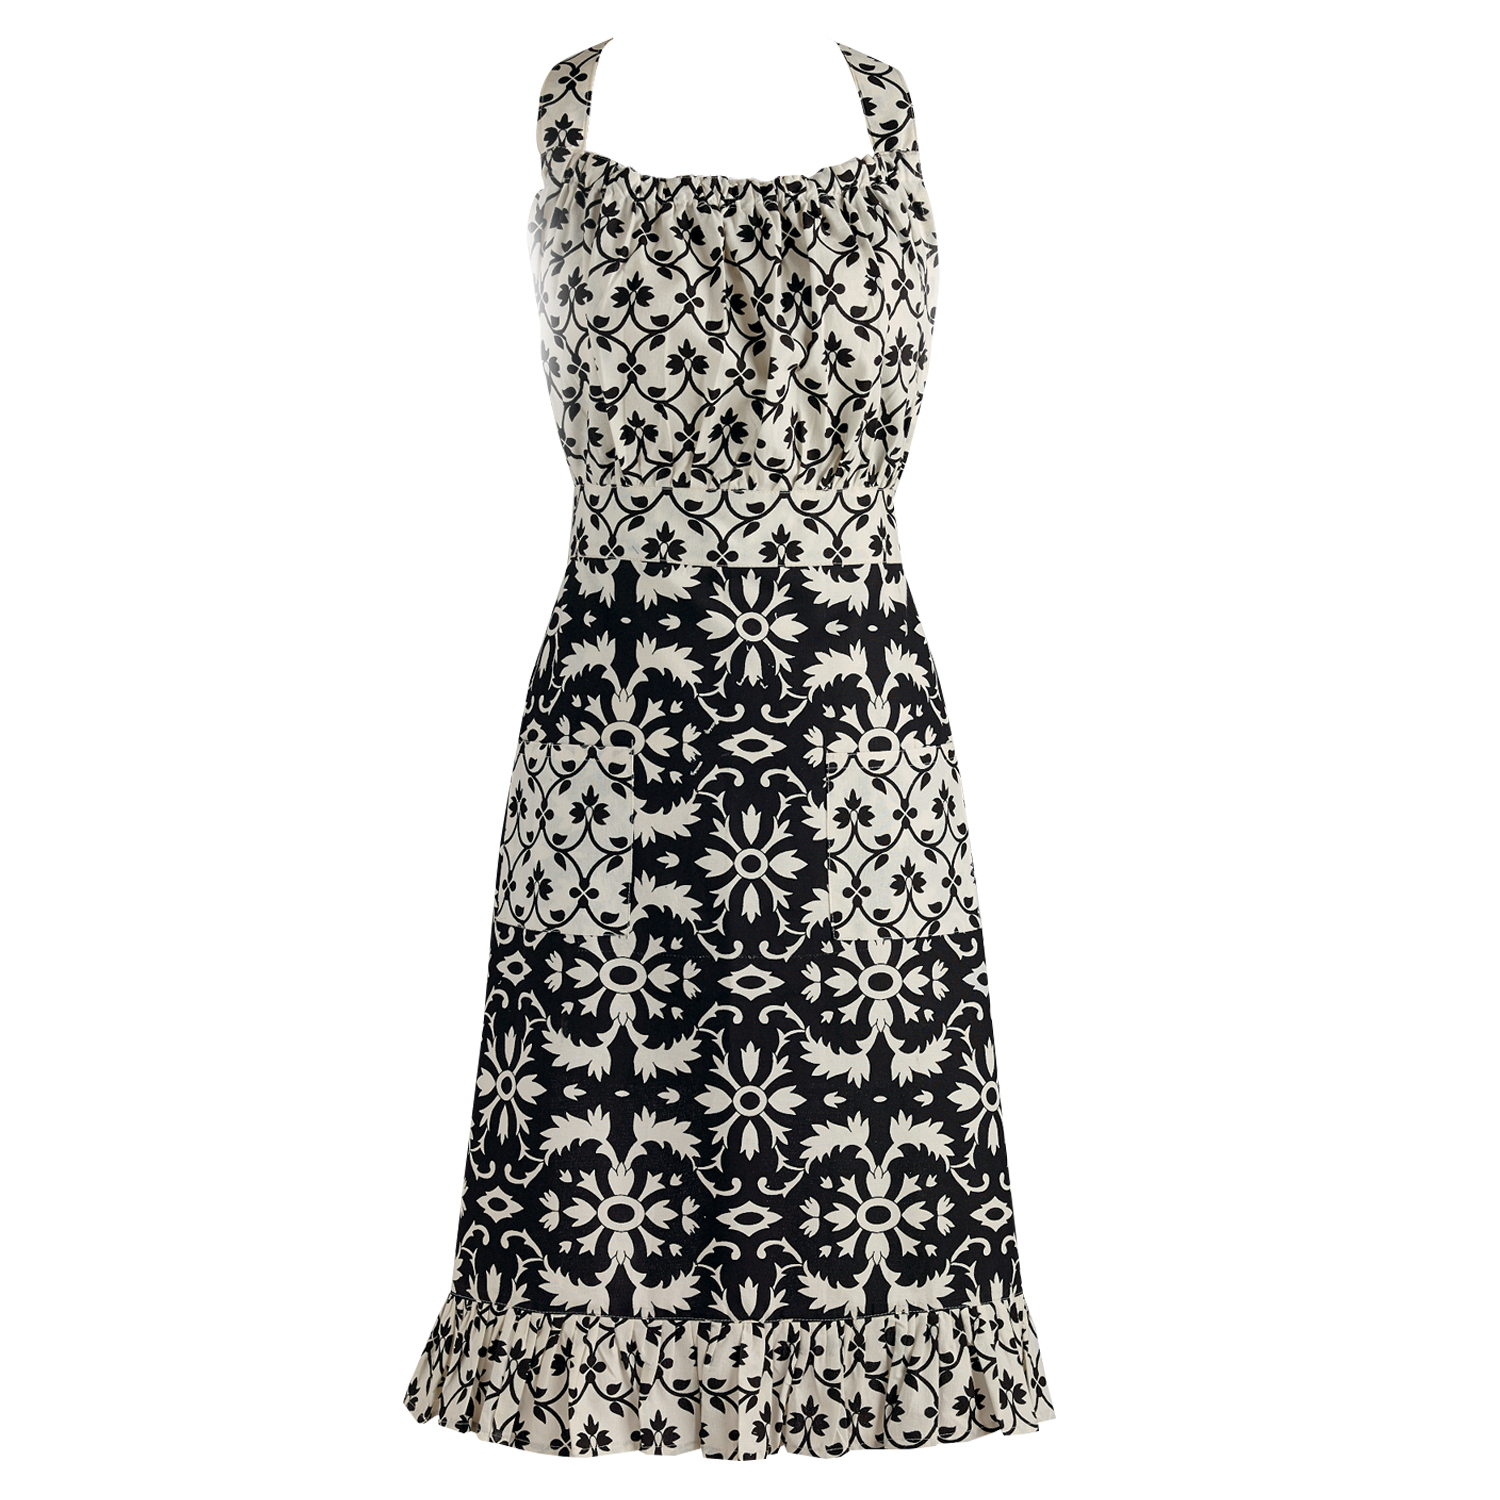 "DII Black & White Prints Vintage Kitchen Apron, 18""x35"", 100% Cotton, Multiple Colors/Patterns"